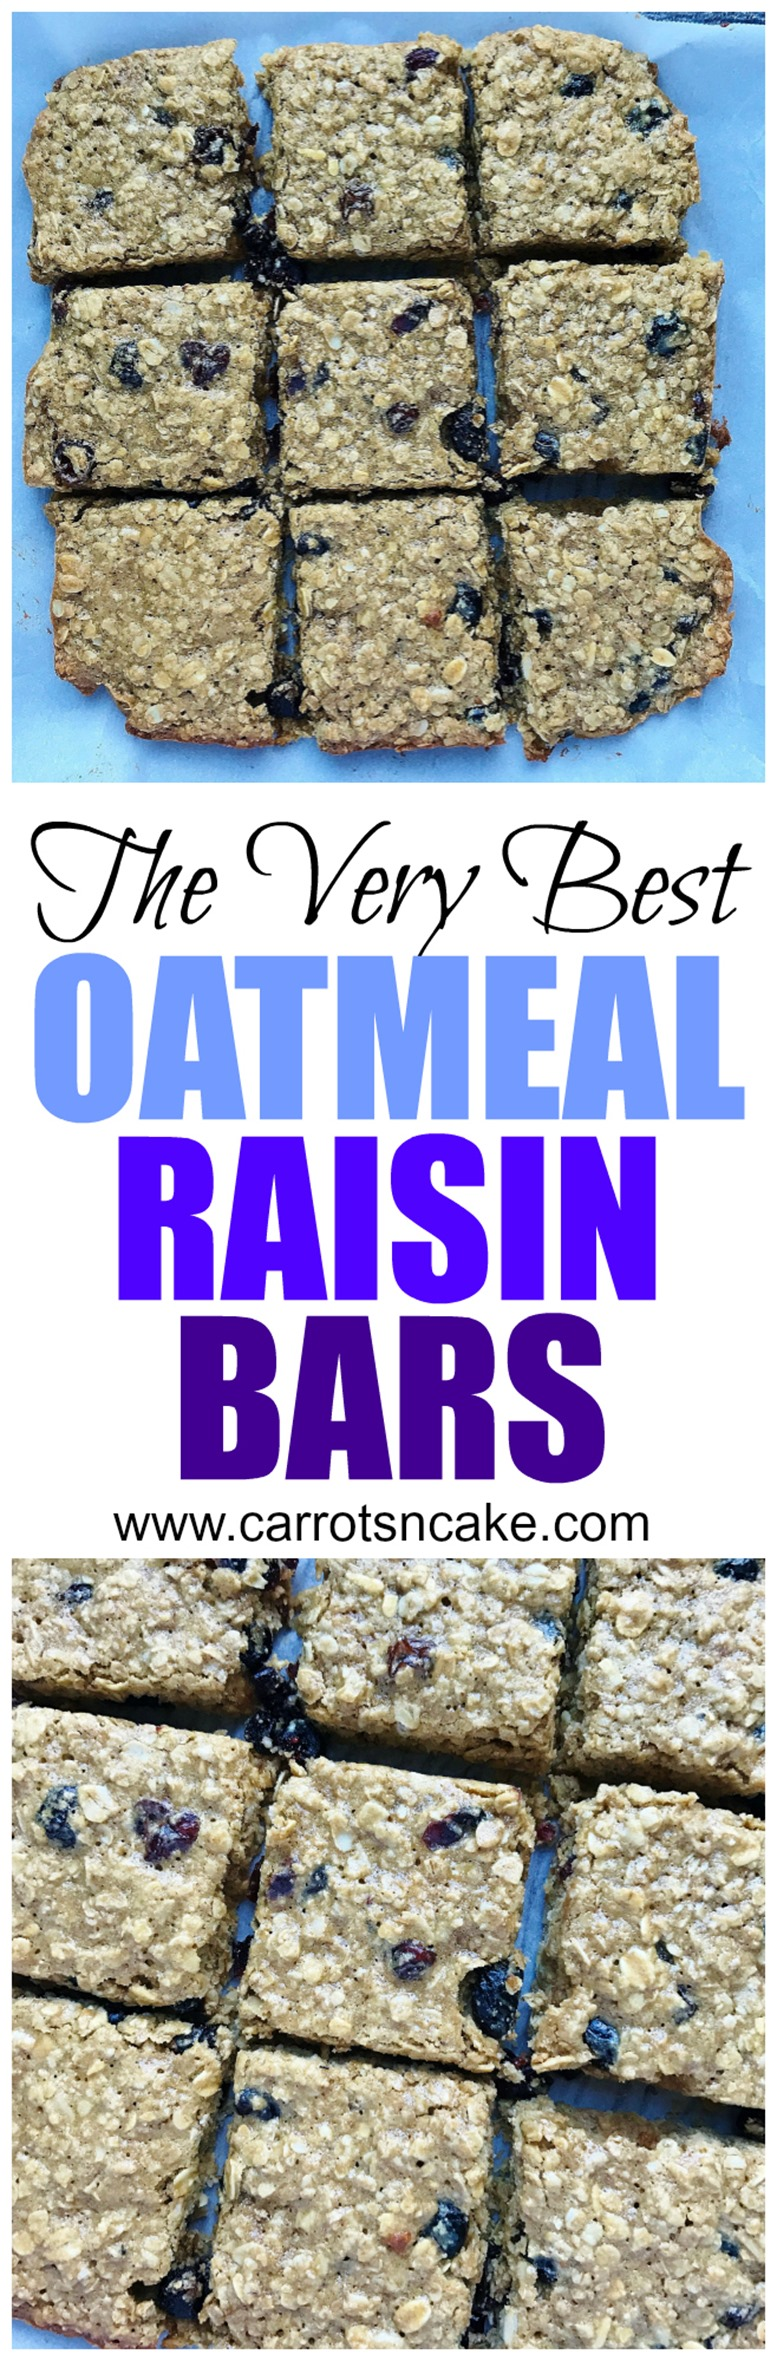 The Best Oatmeal Raisin Bars